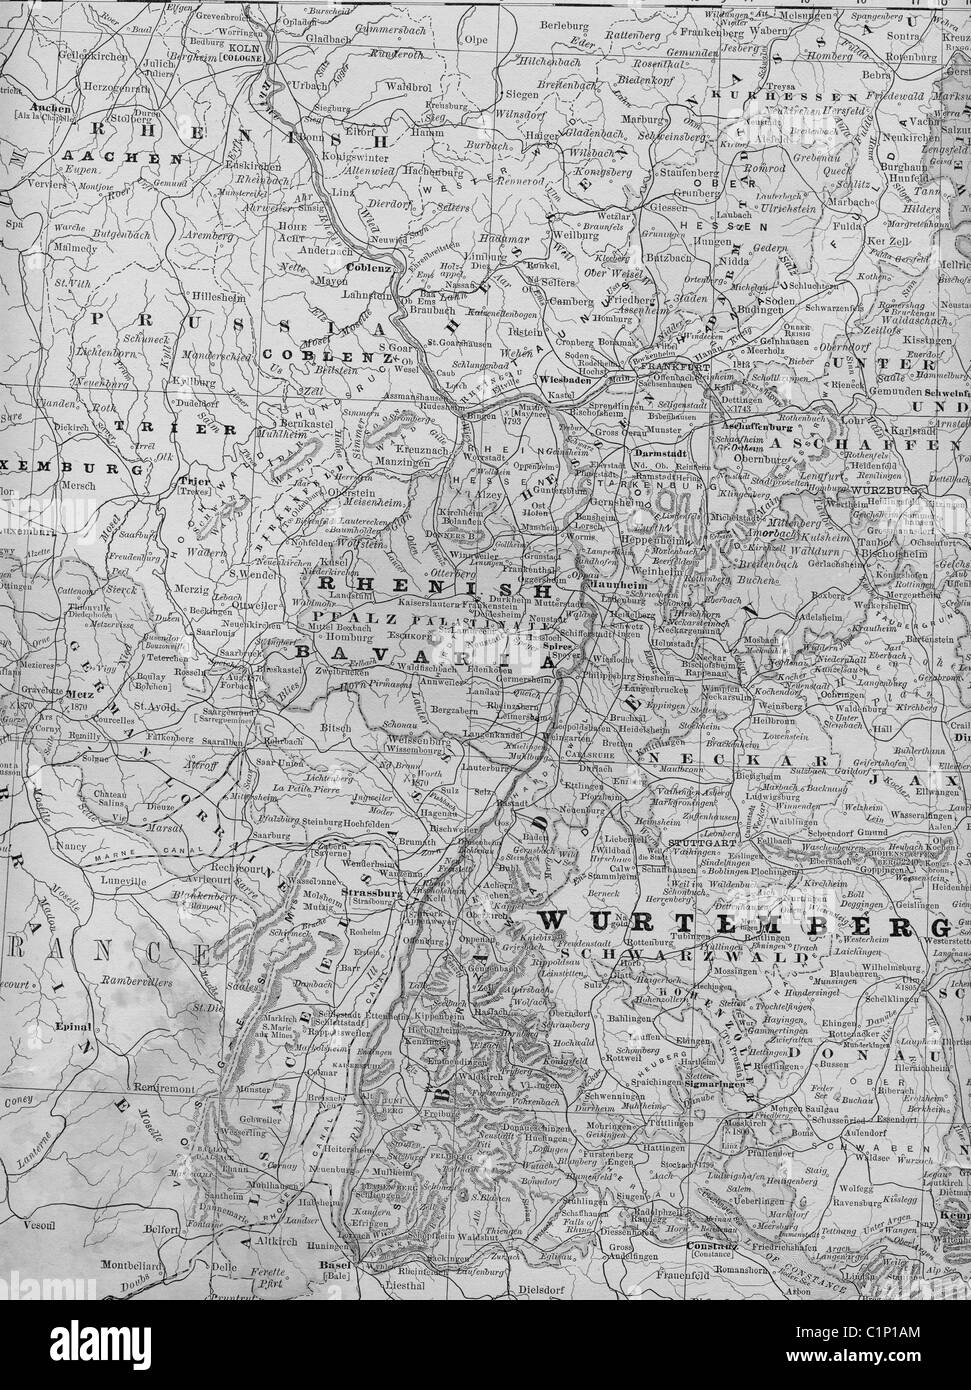 Old Map Of Southern Germany From Original Geography Textbook 1884